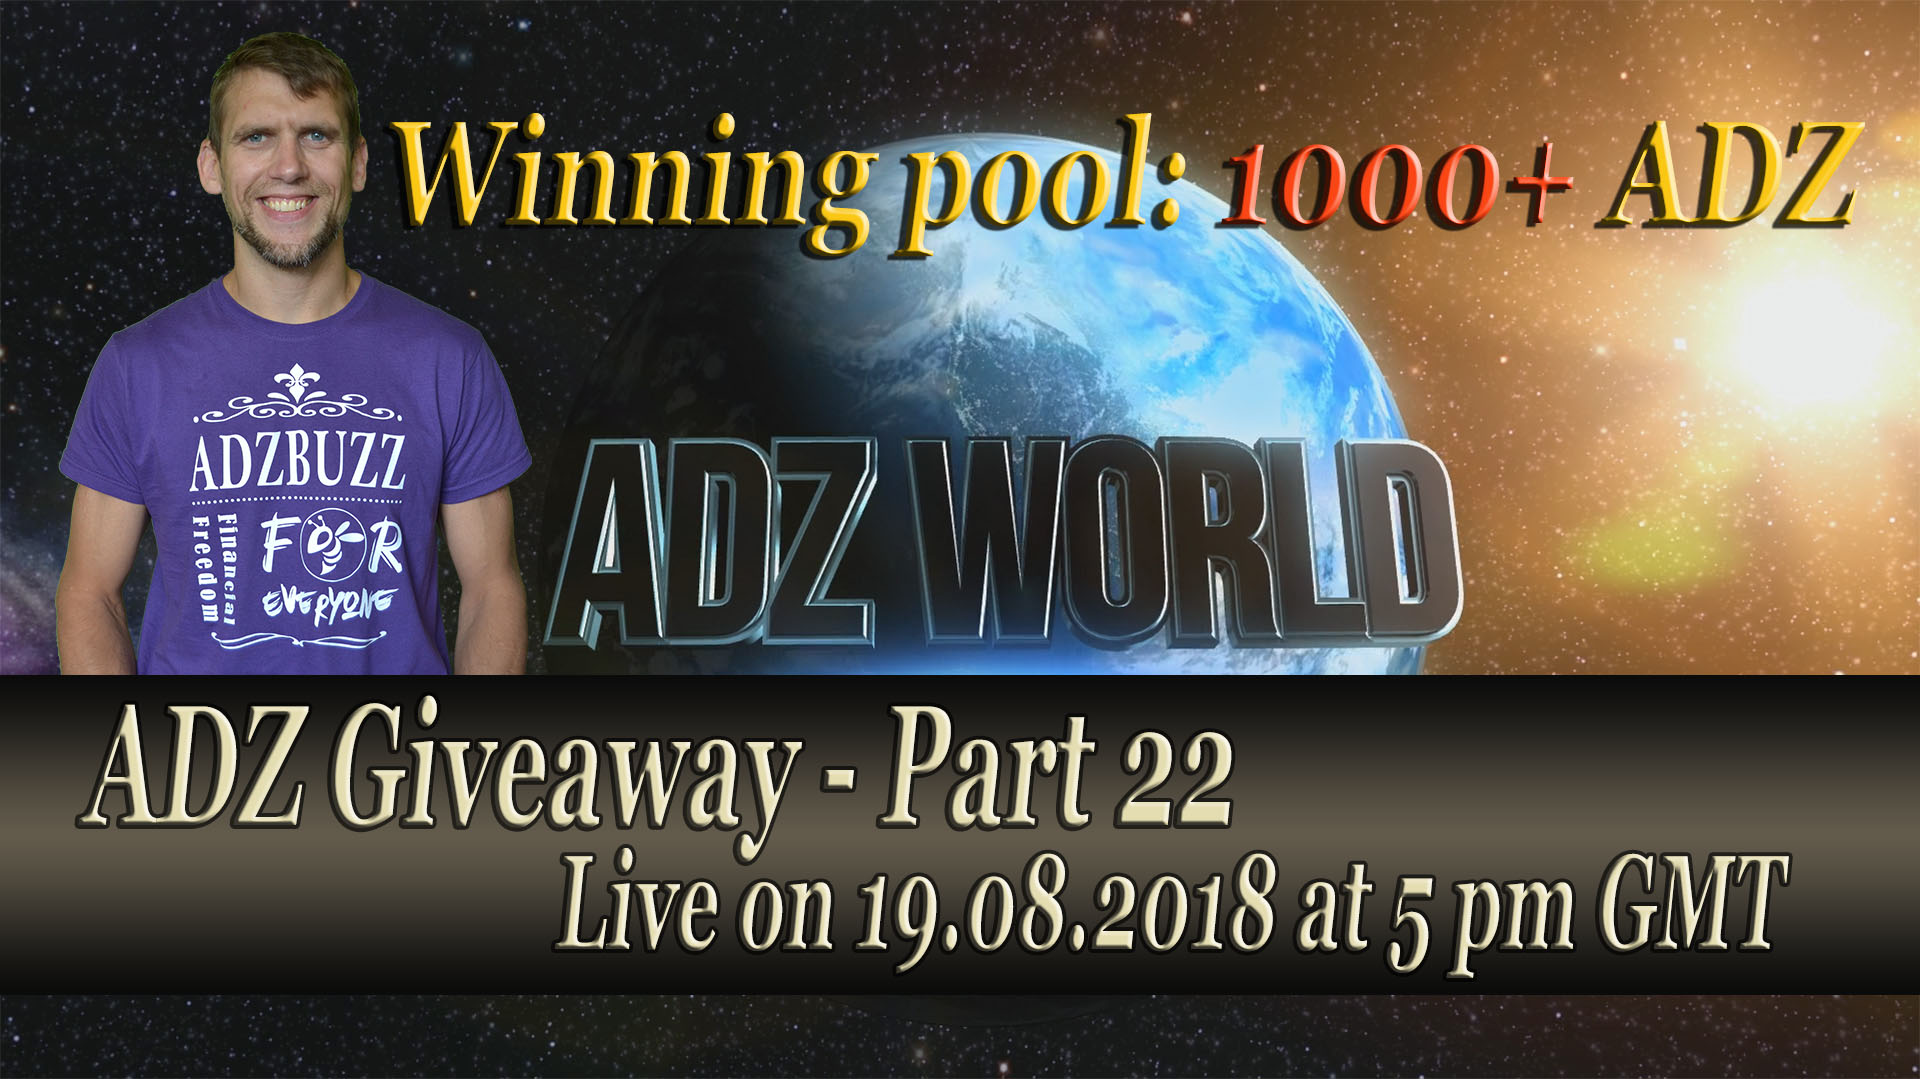 ADZ Giveaway 22 Live on 19.08 at 5 PM GMT